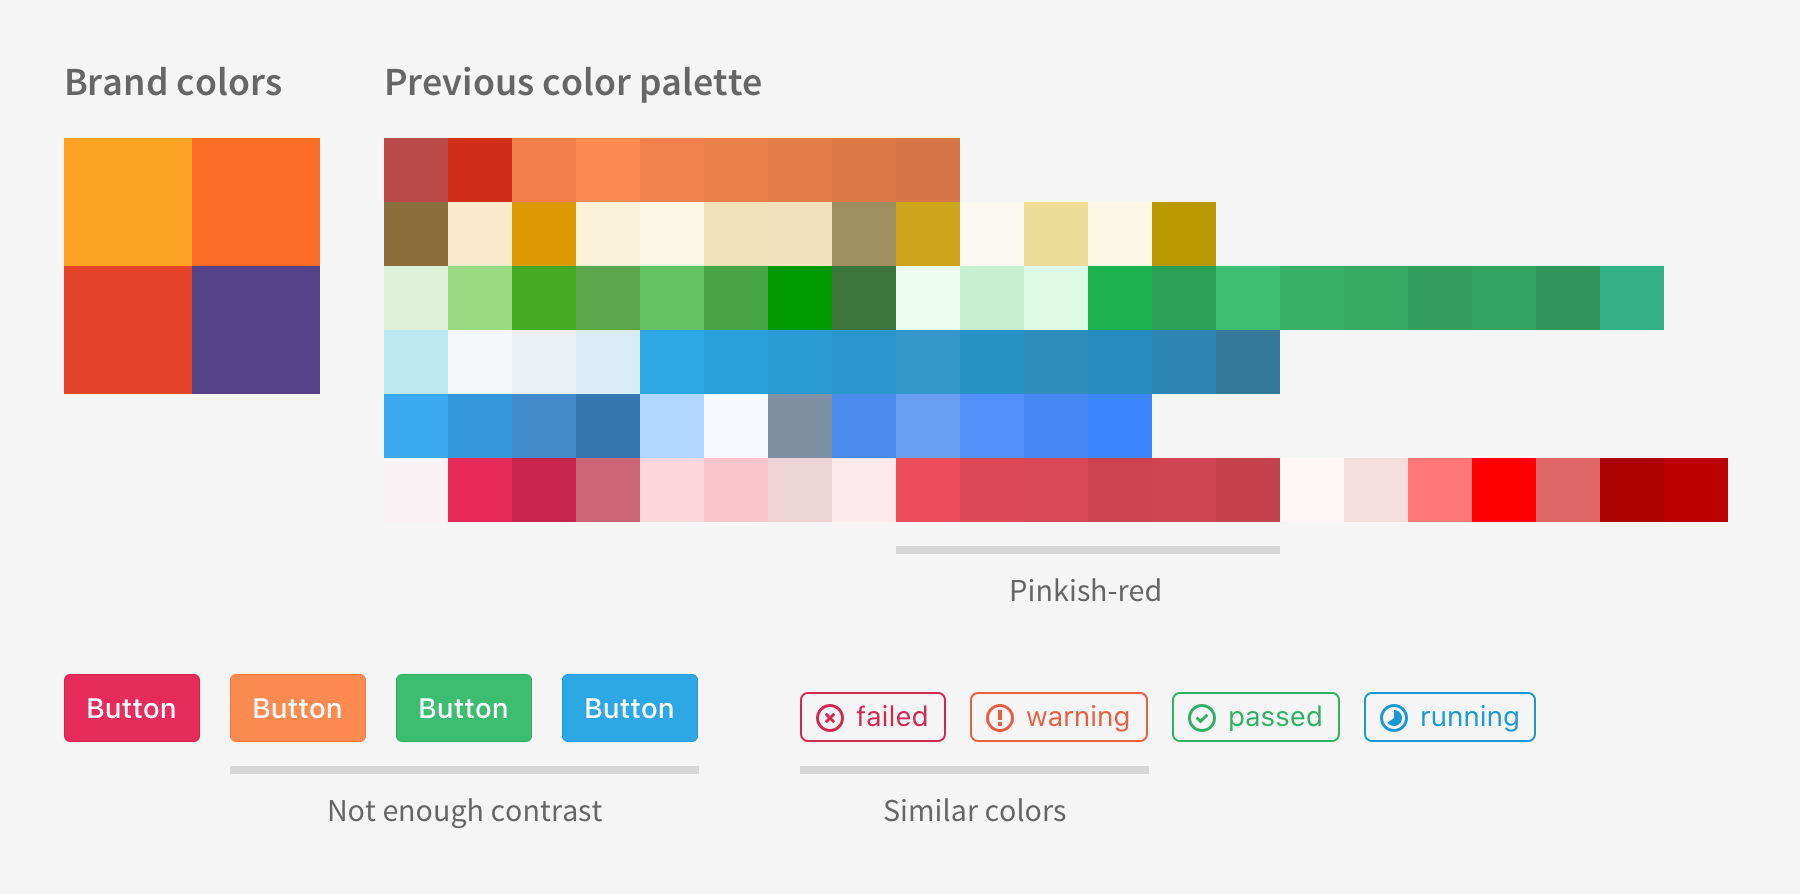 Previous color palette